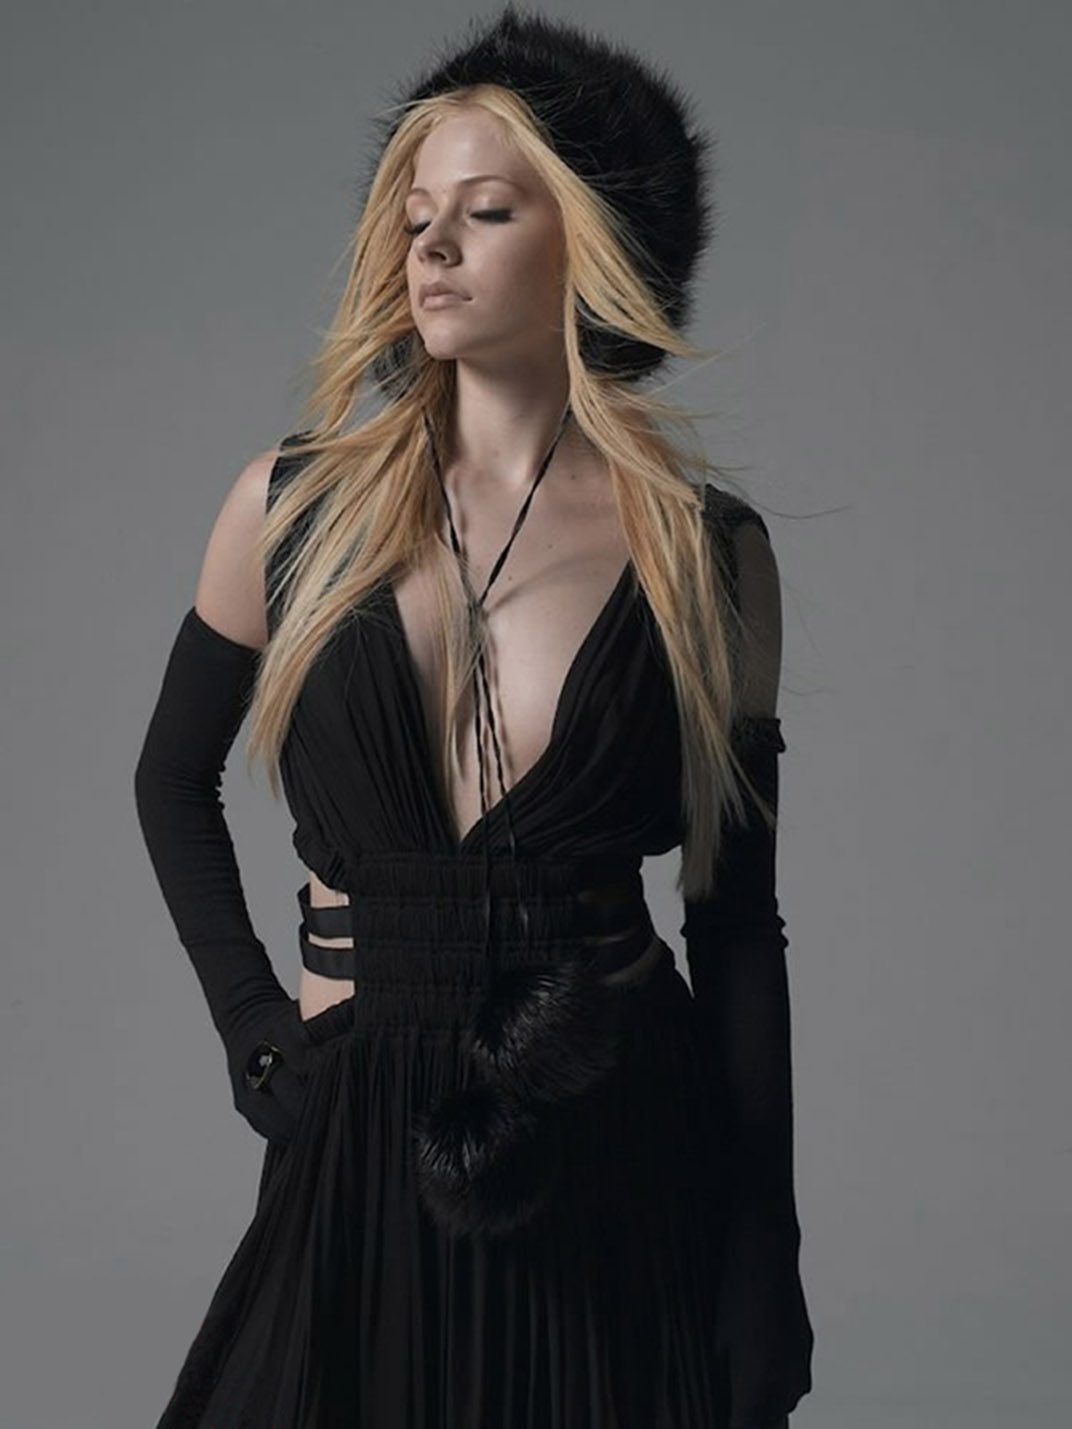 Female Singers: Avril Lavigne pictures gallery (18)